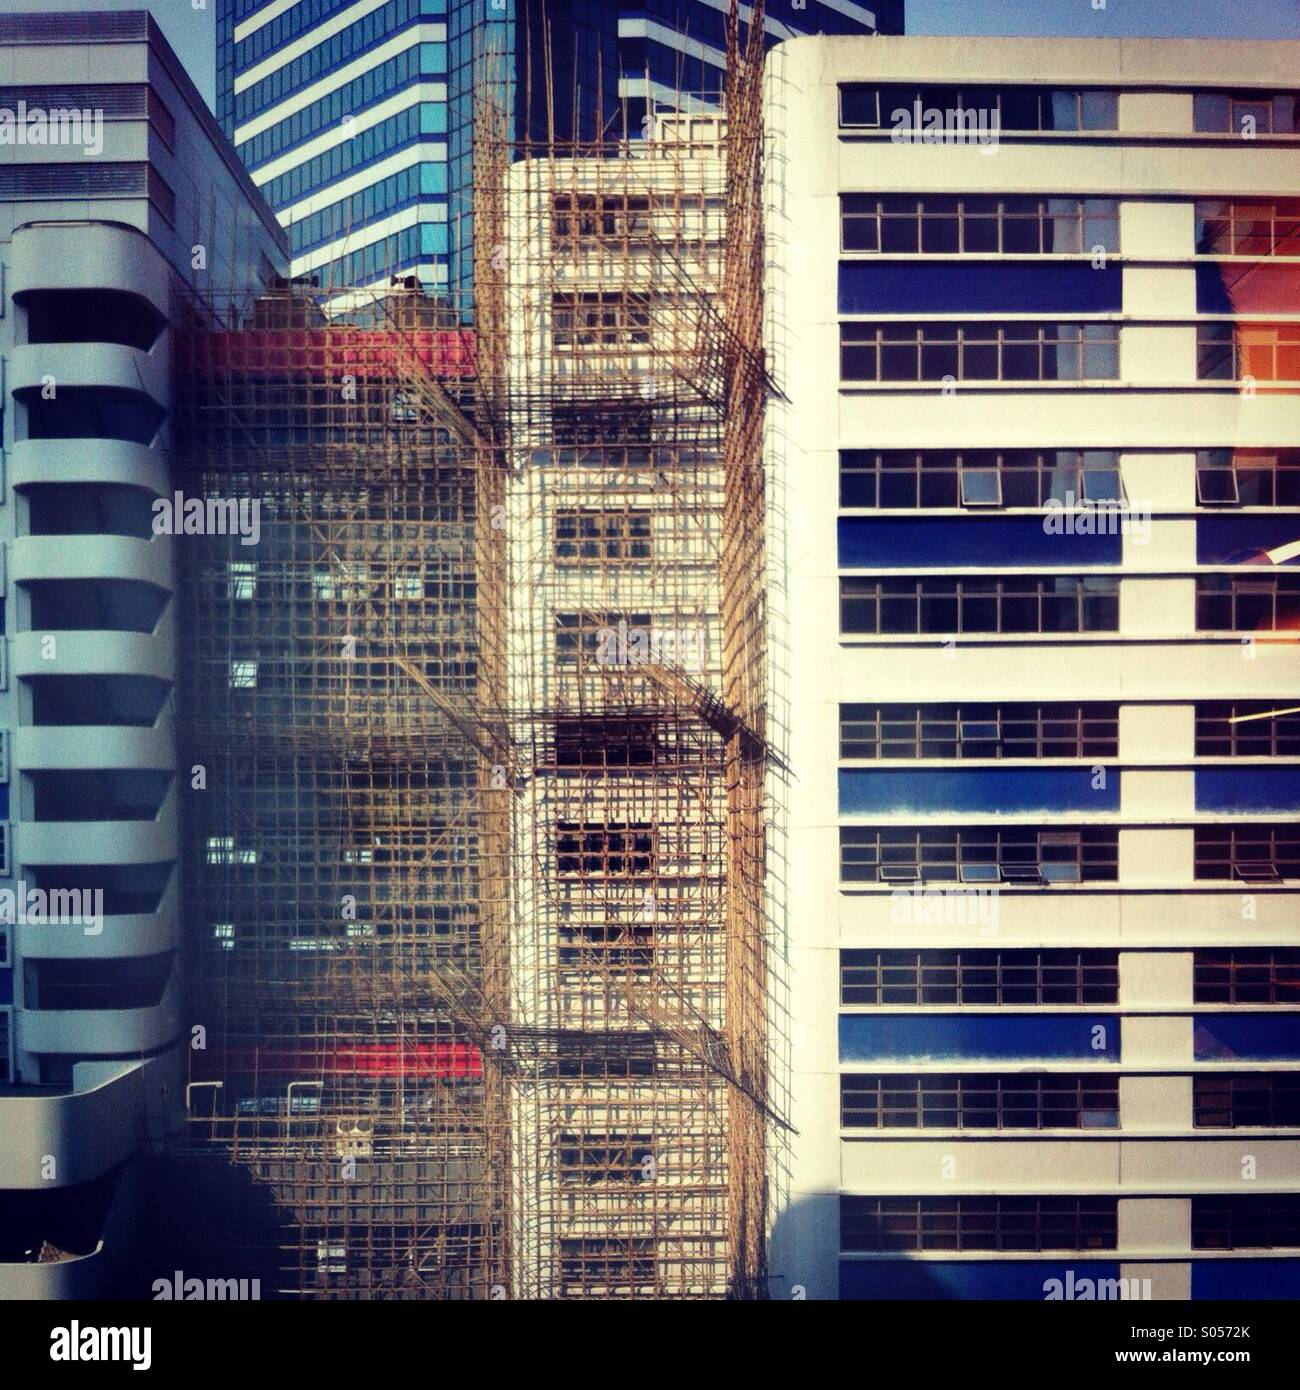 It's a photo of a bamboo scafolding in Honh kong in Taikoo place Stock Photo